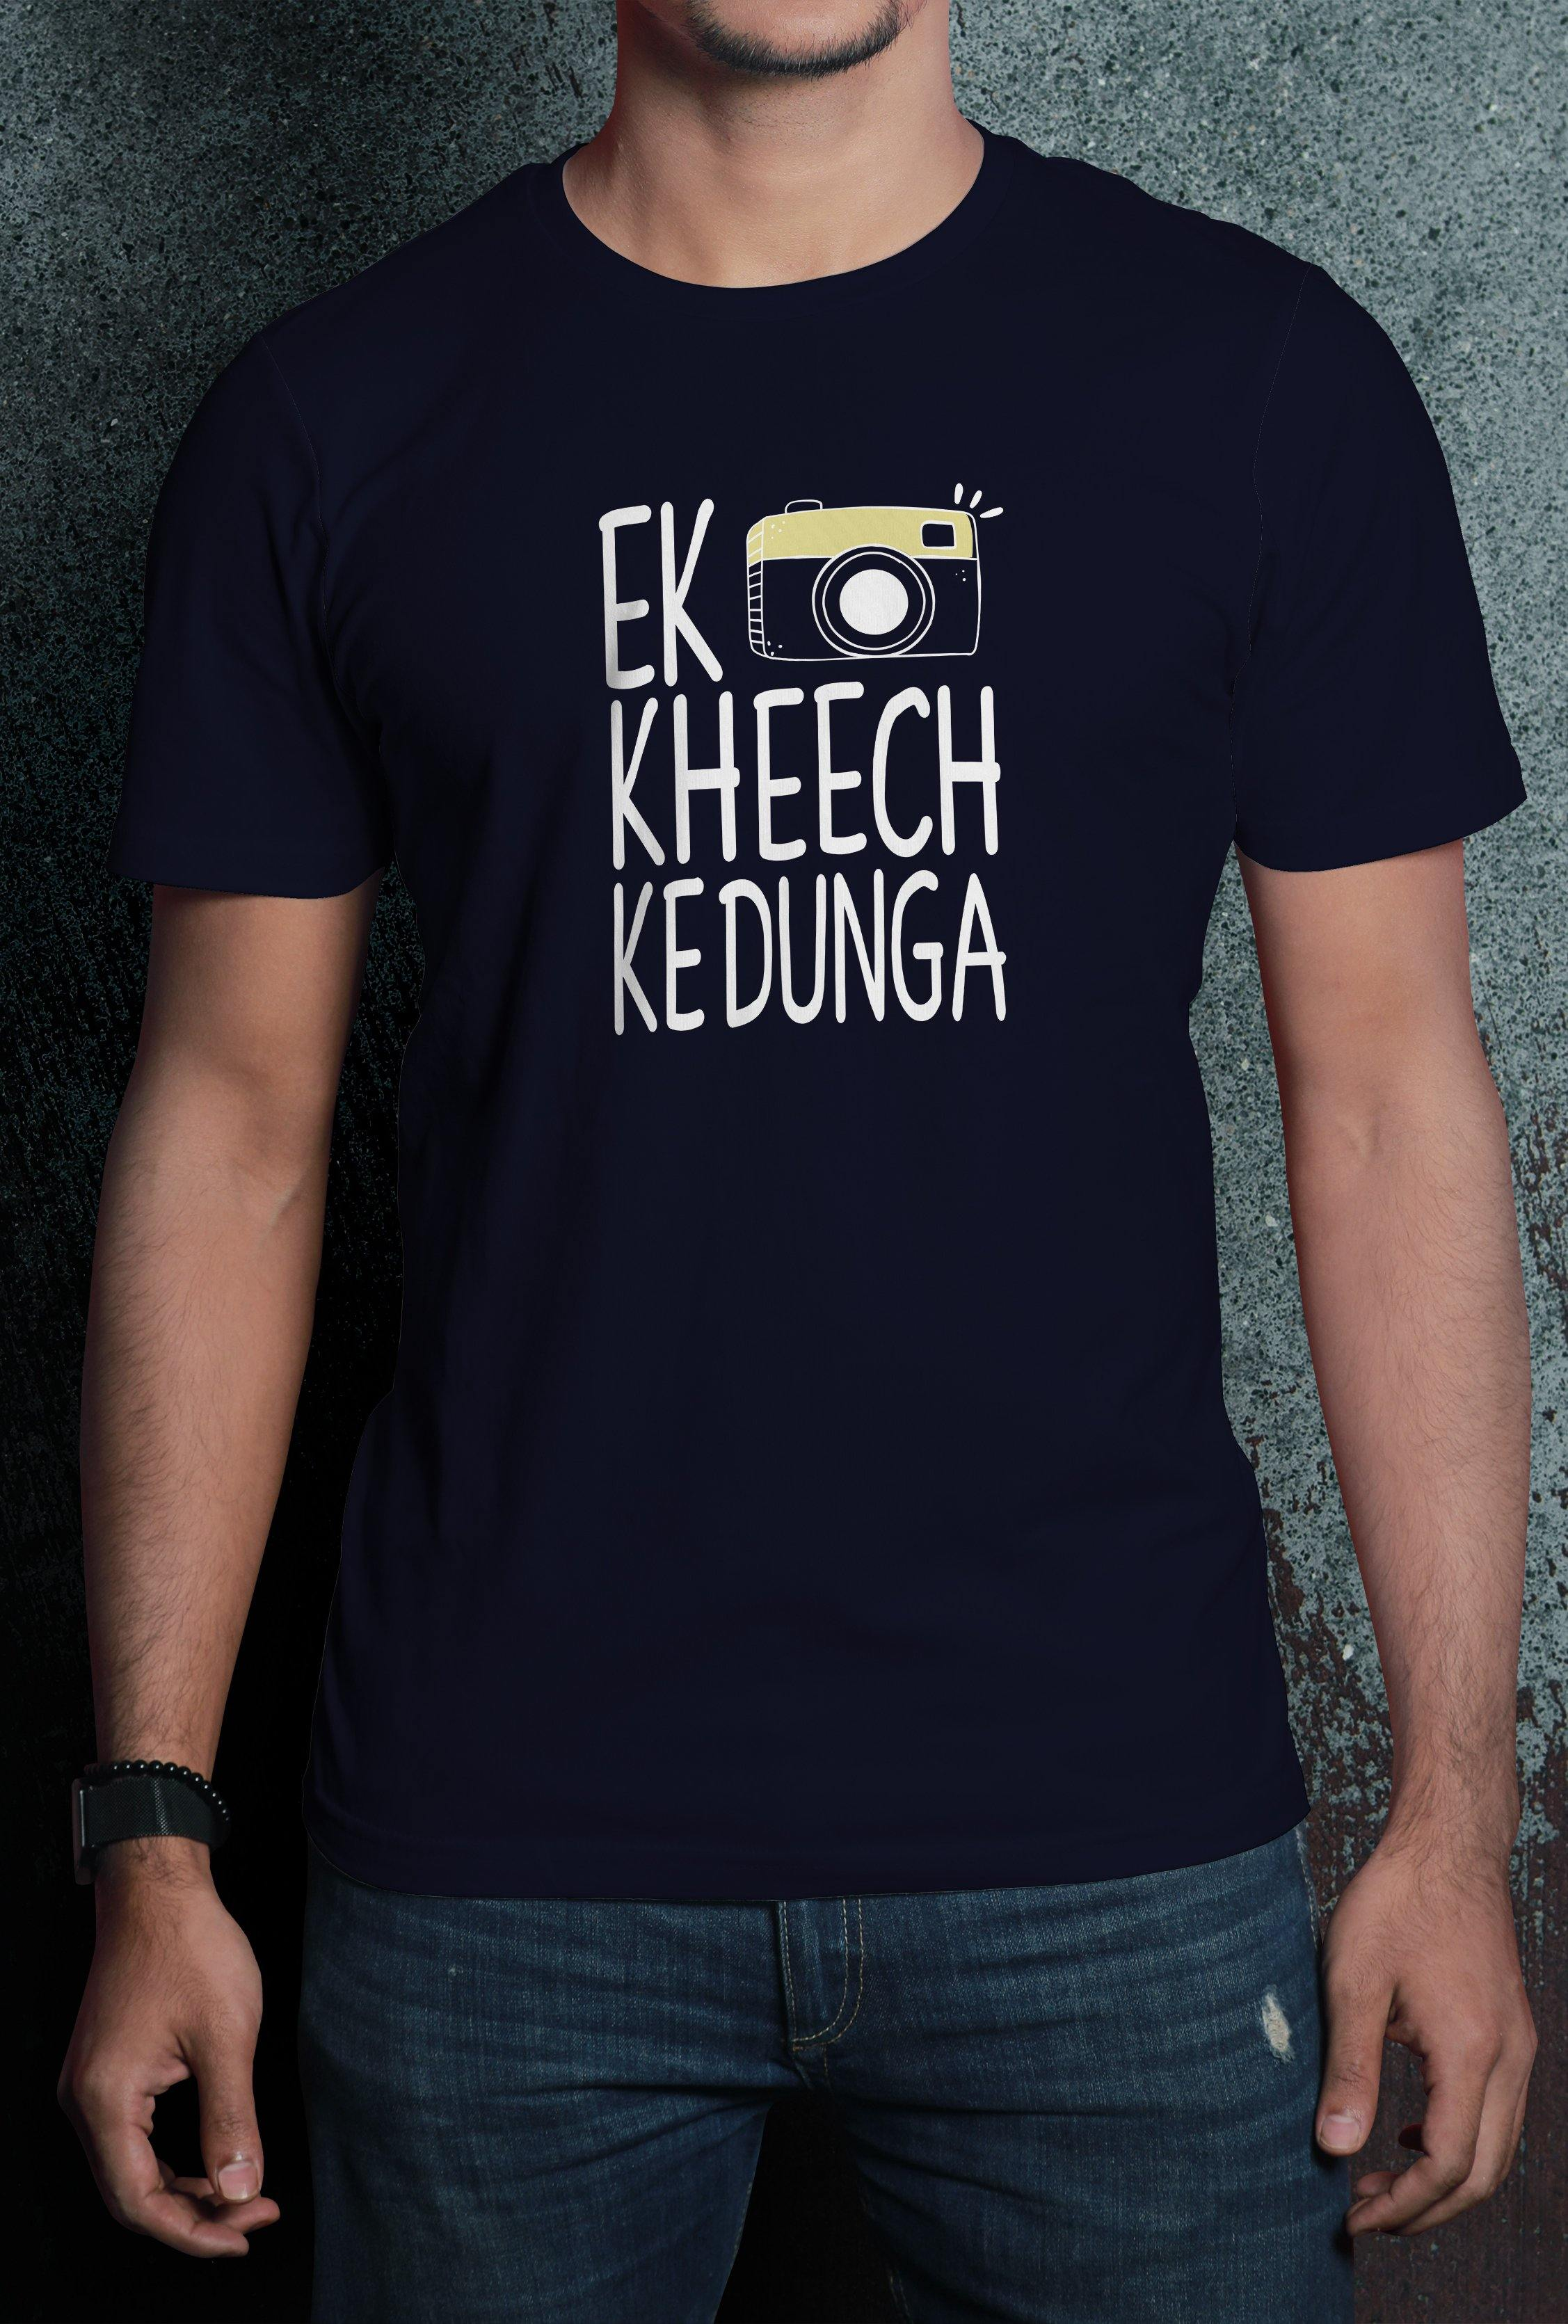 Ek Kheech Ke Dunga Print Half Sleeve Premium Quality Cotton T-Shirt - thewardrobe-store-in